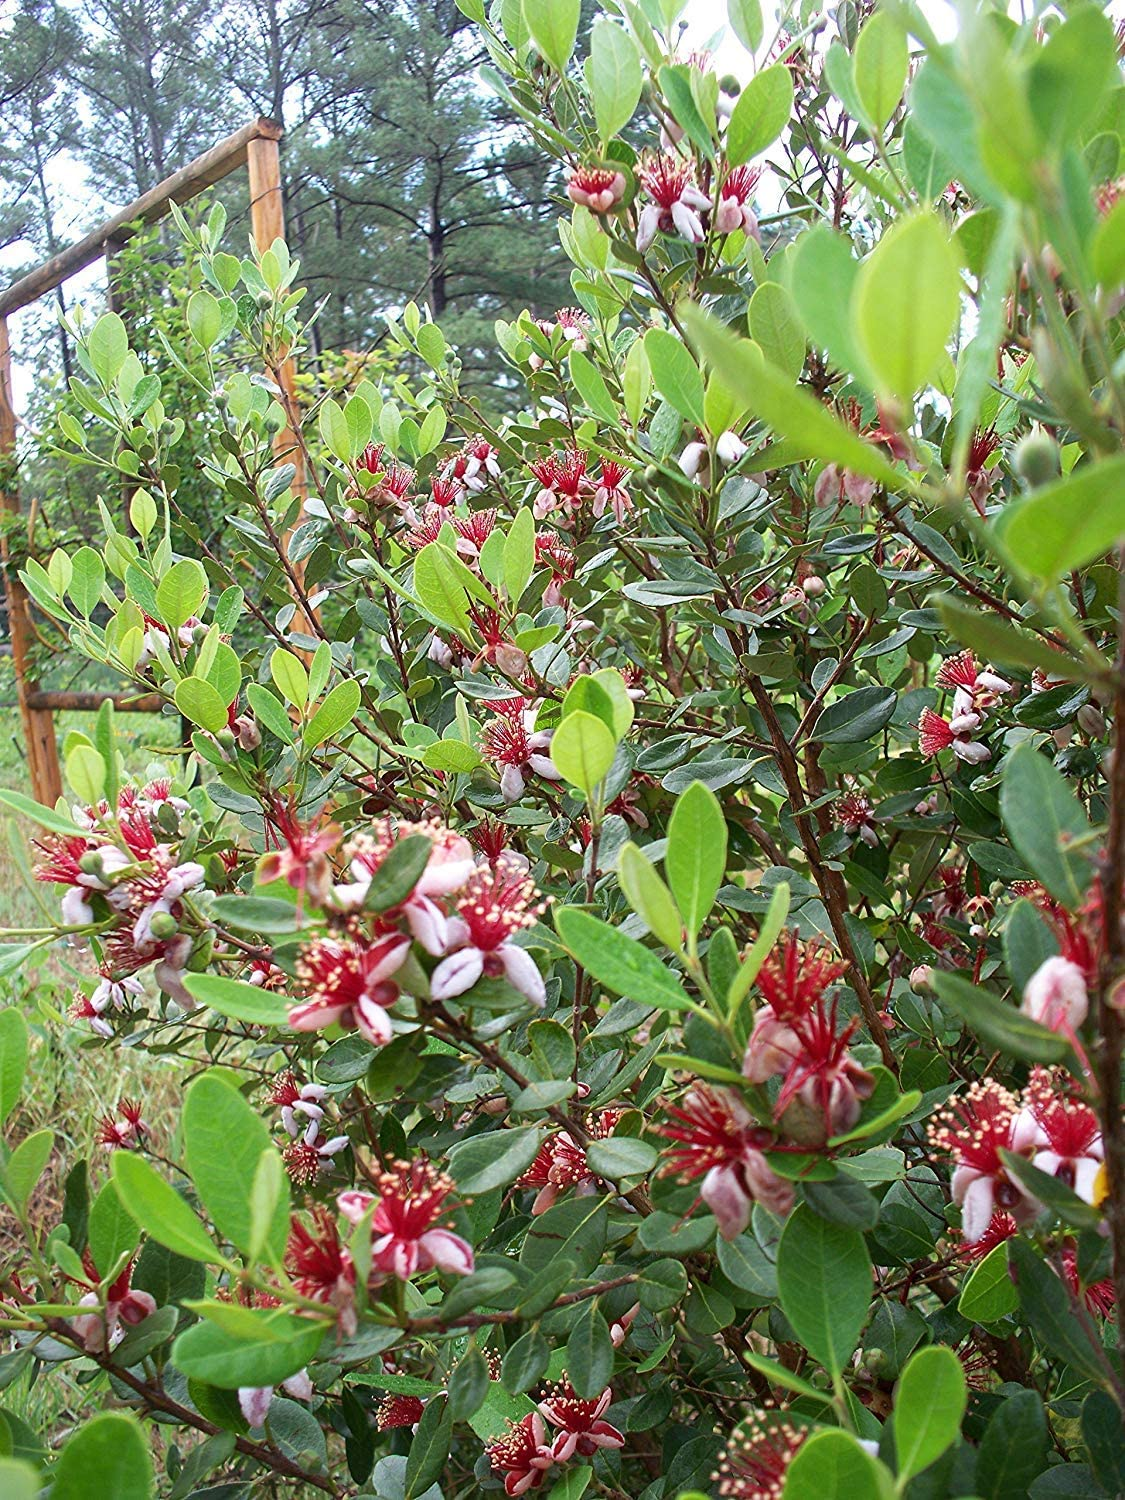 Pineapple Guava Feijoa Sellowiana Live Plant Fit 5 Gallon Pot LARGE full plant